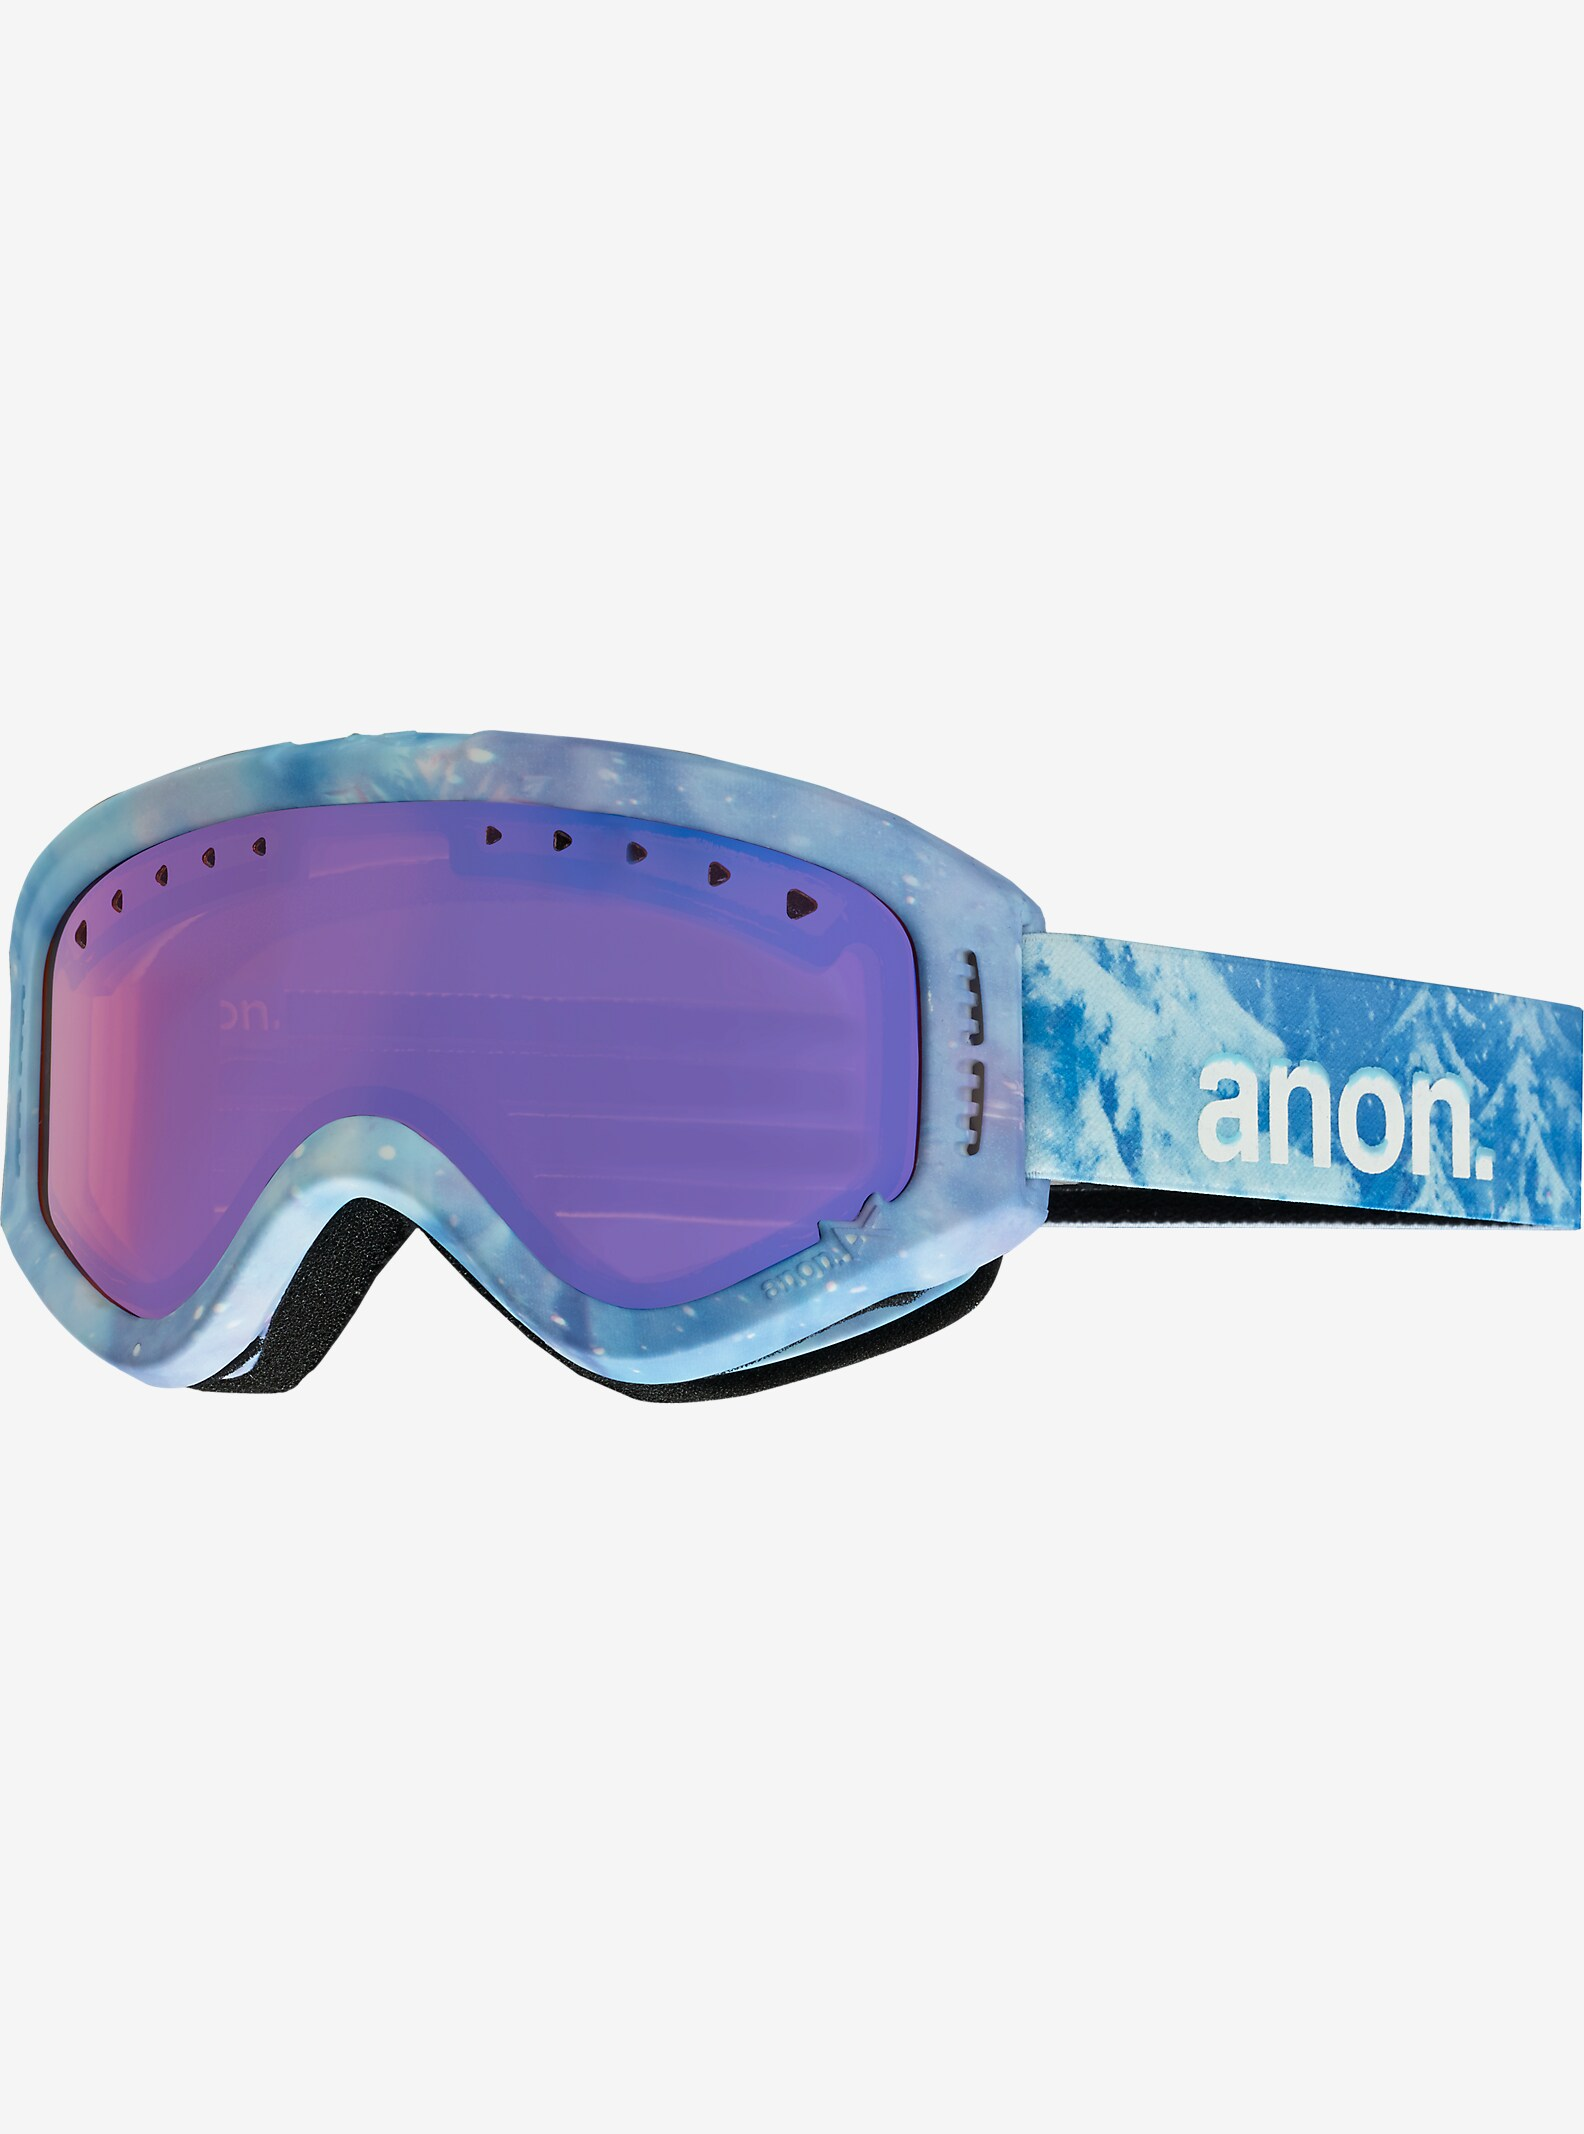 Disney Frozen Tracker Goggles by anon. shown in Frame: Frozen © Disney, Lens: Blue Amber